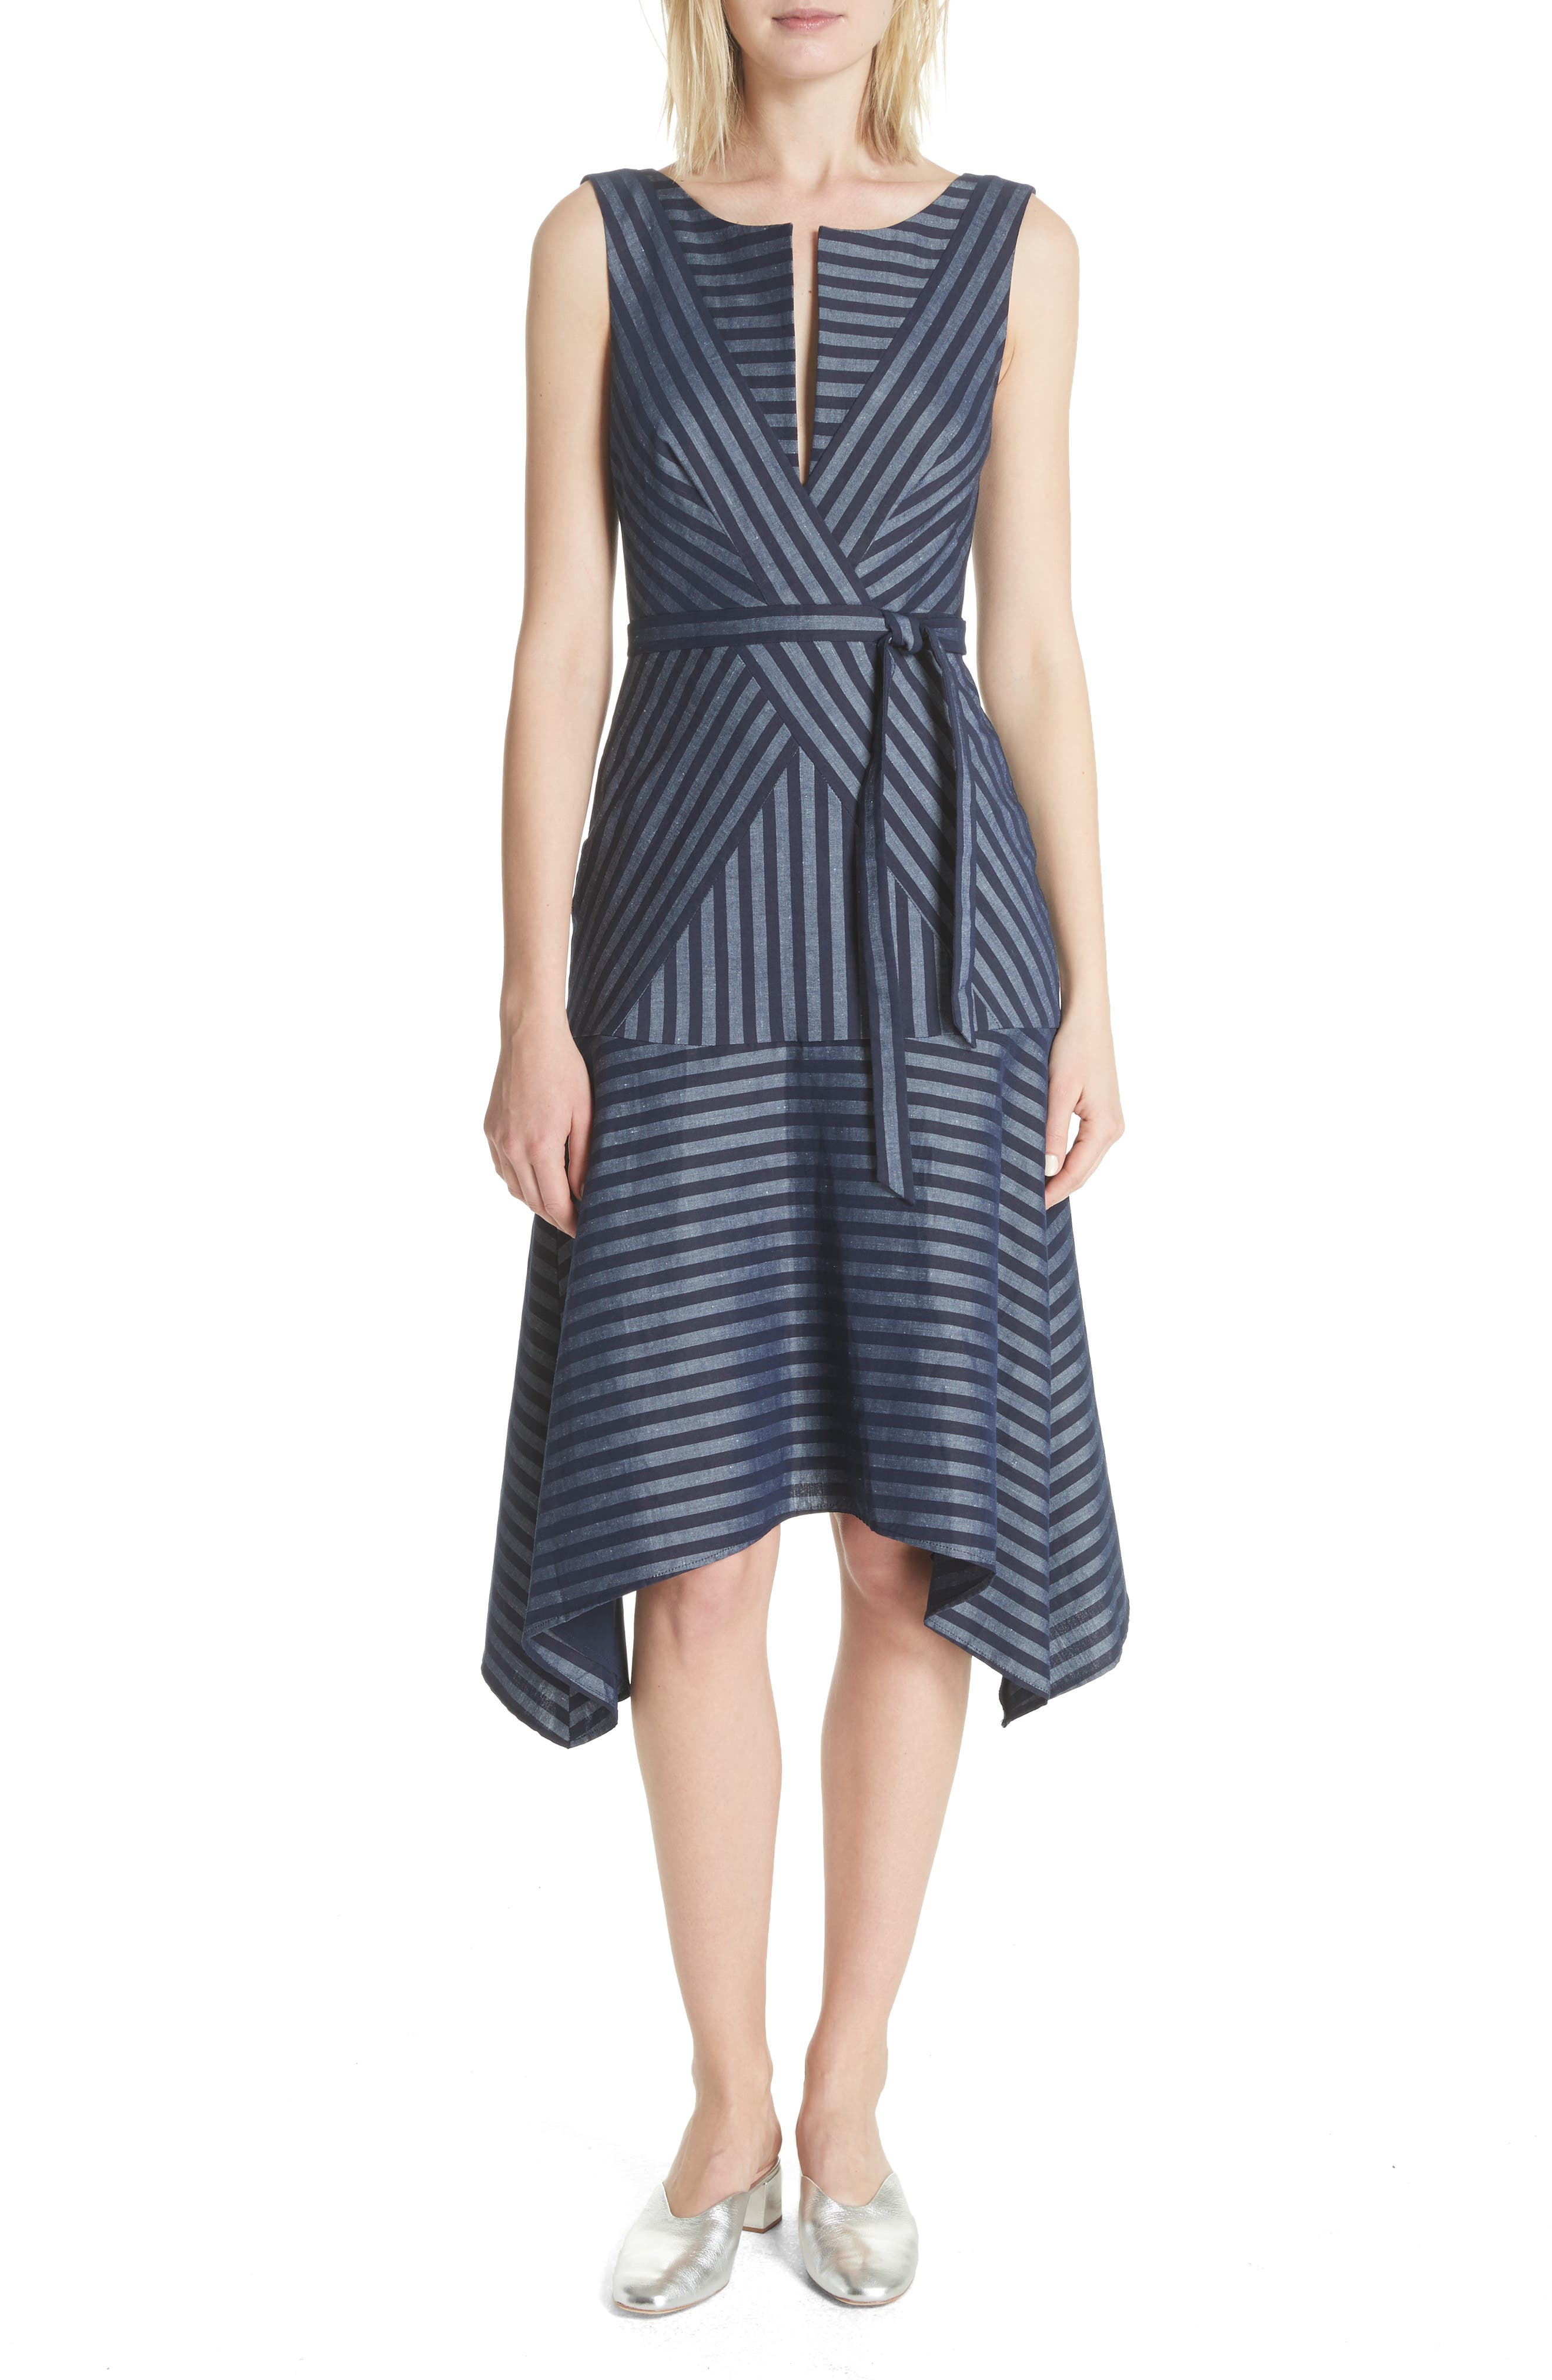 TRACY REESE Directional Stripe A-Line Dress, Main, color, 417